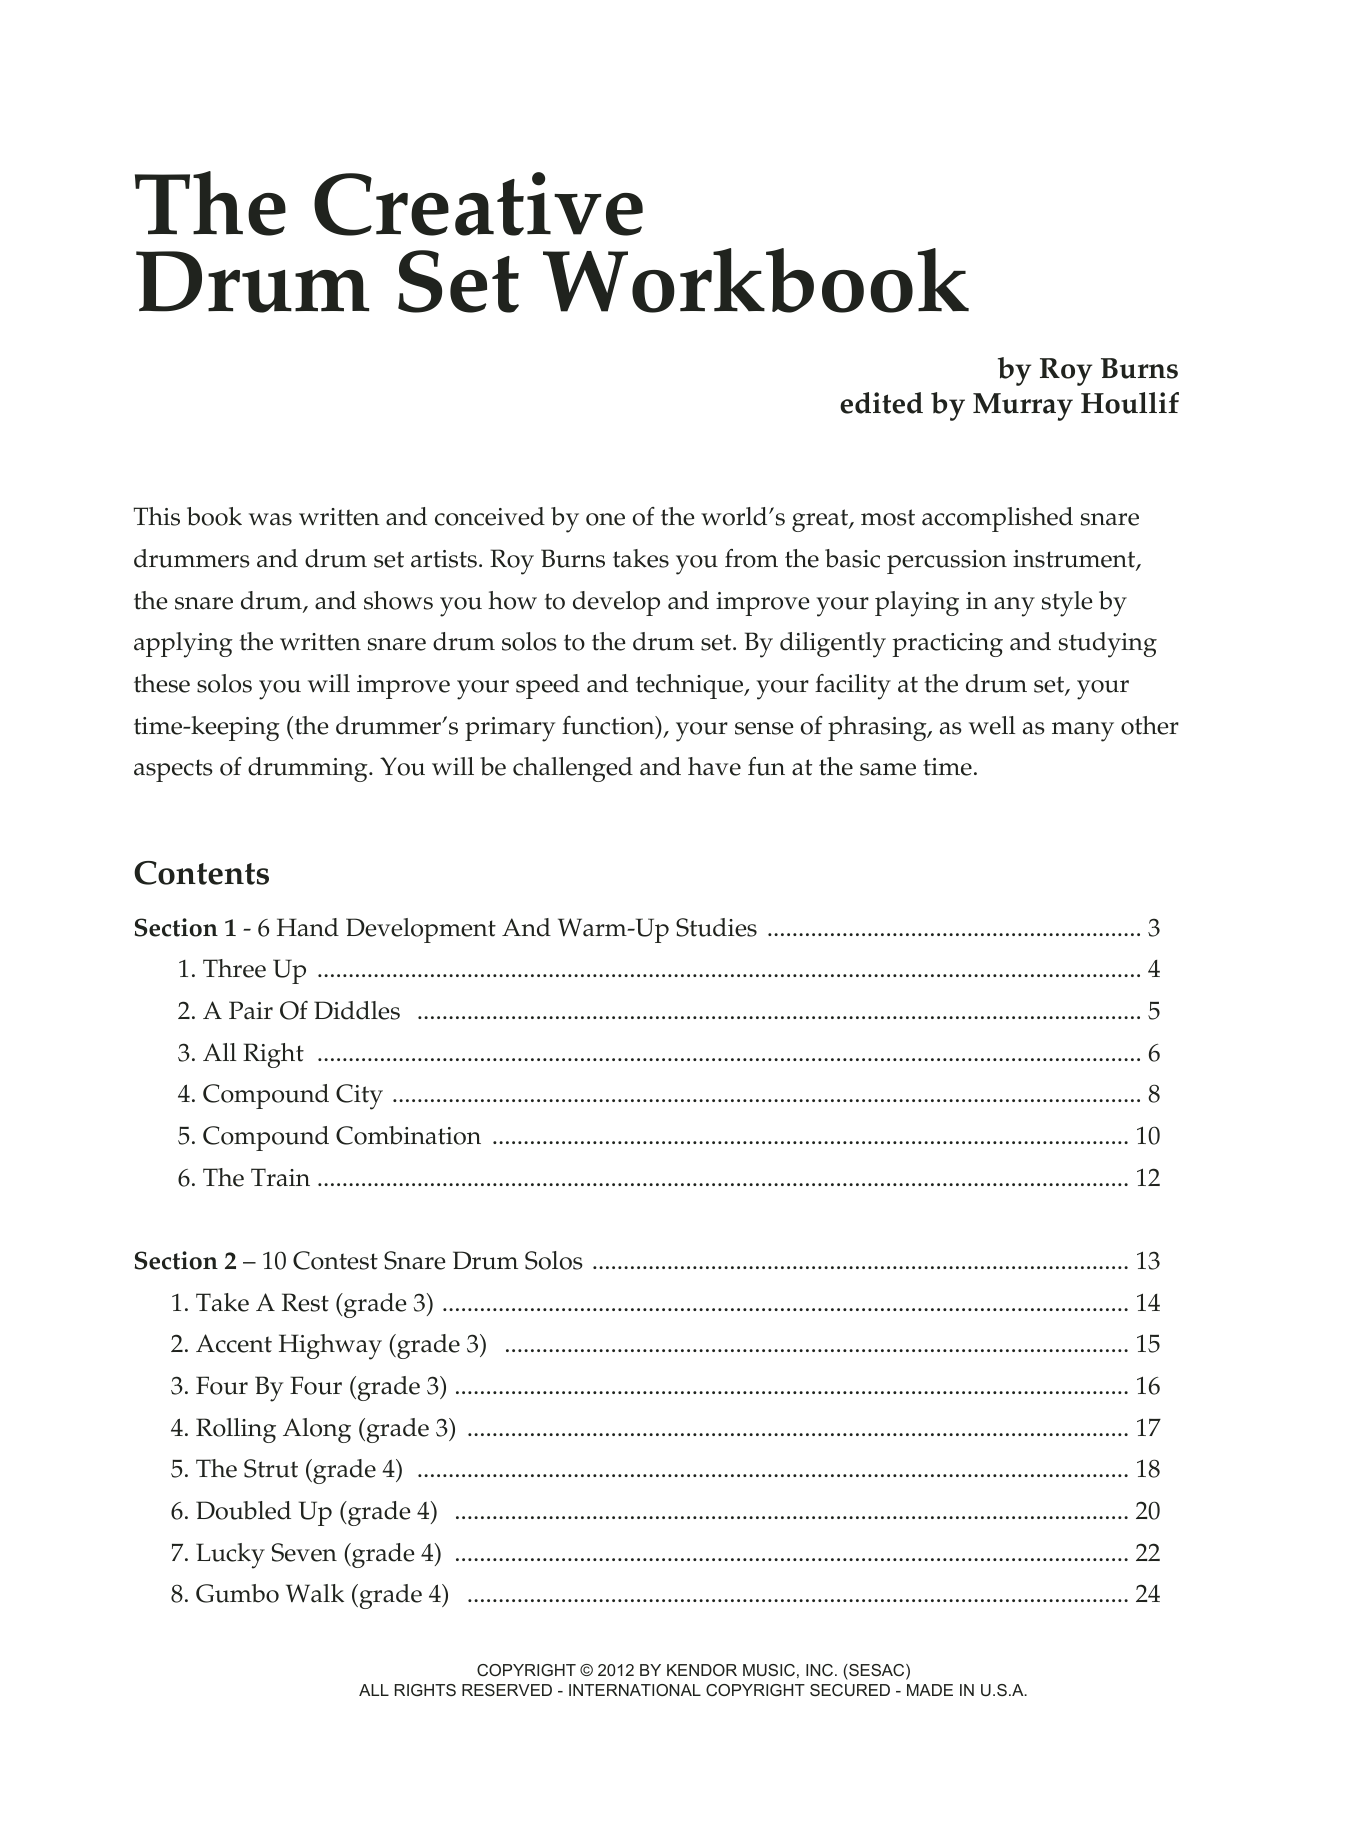 Murray Houllif The Creative Drum Set Workbook sheet music notes and chords